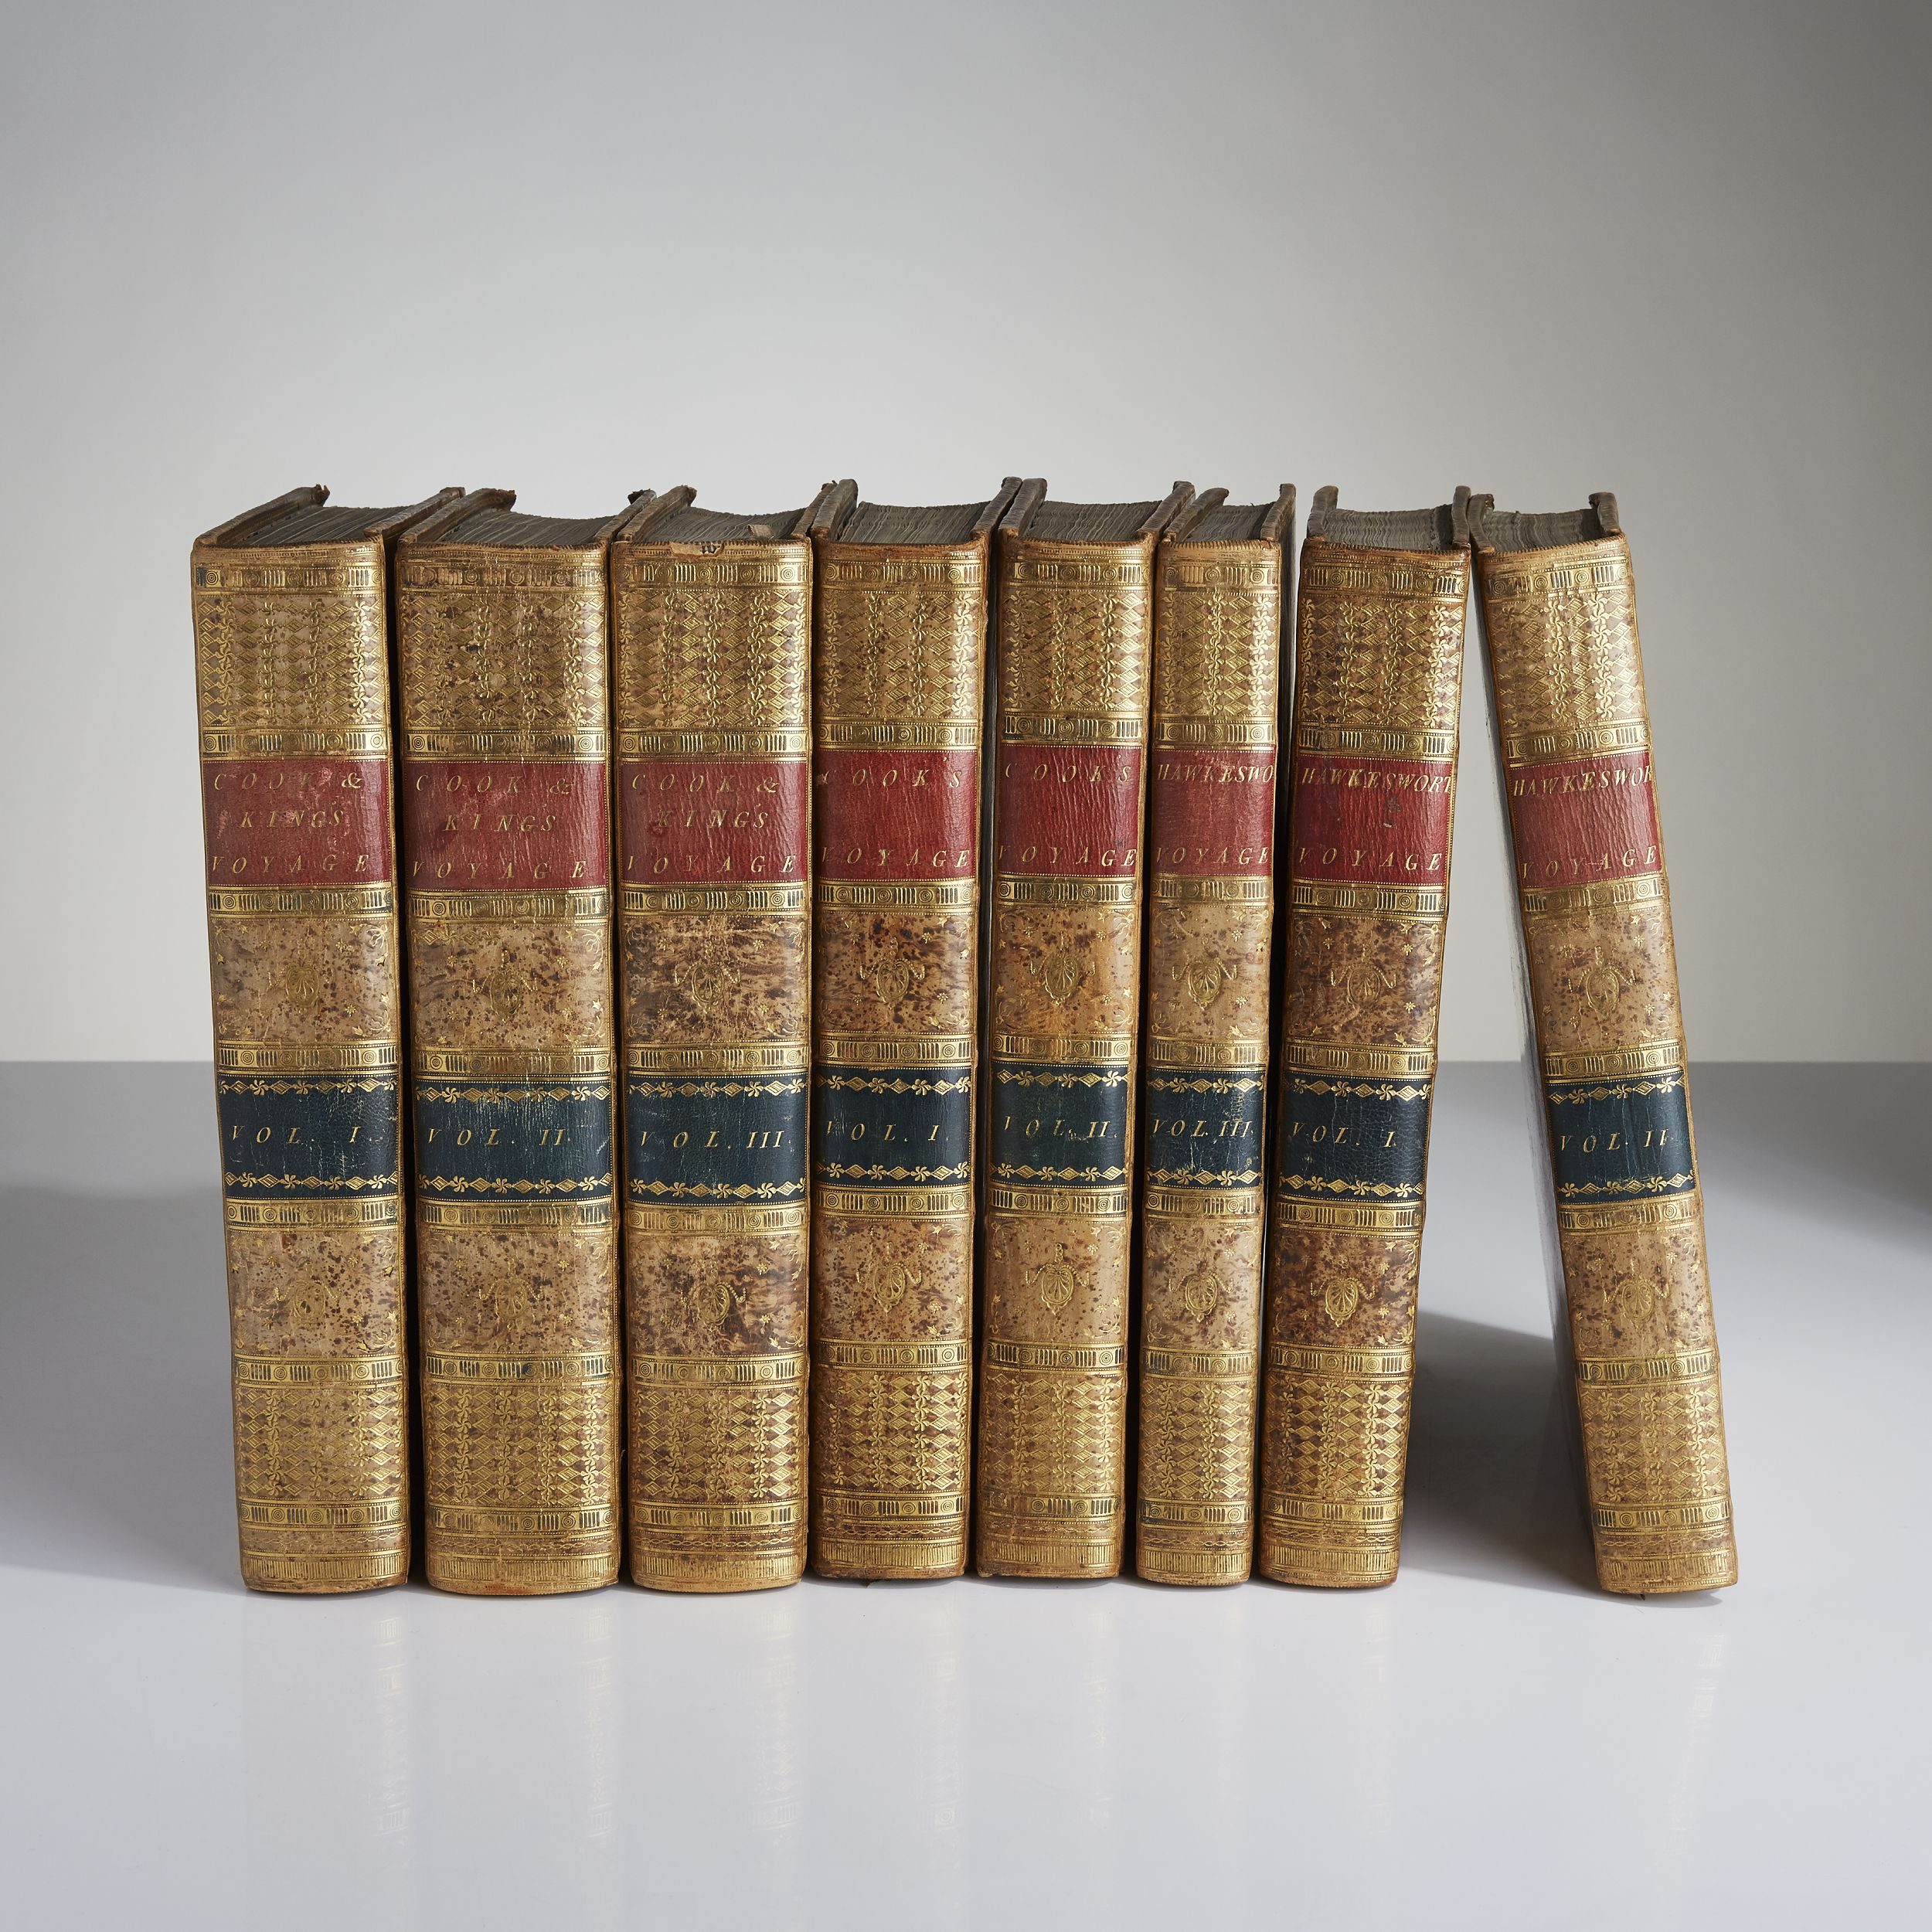 A fine set of Cook's three voyages 1773-85